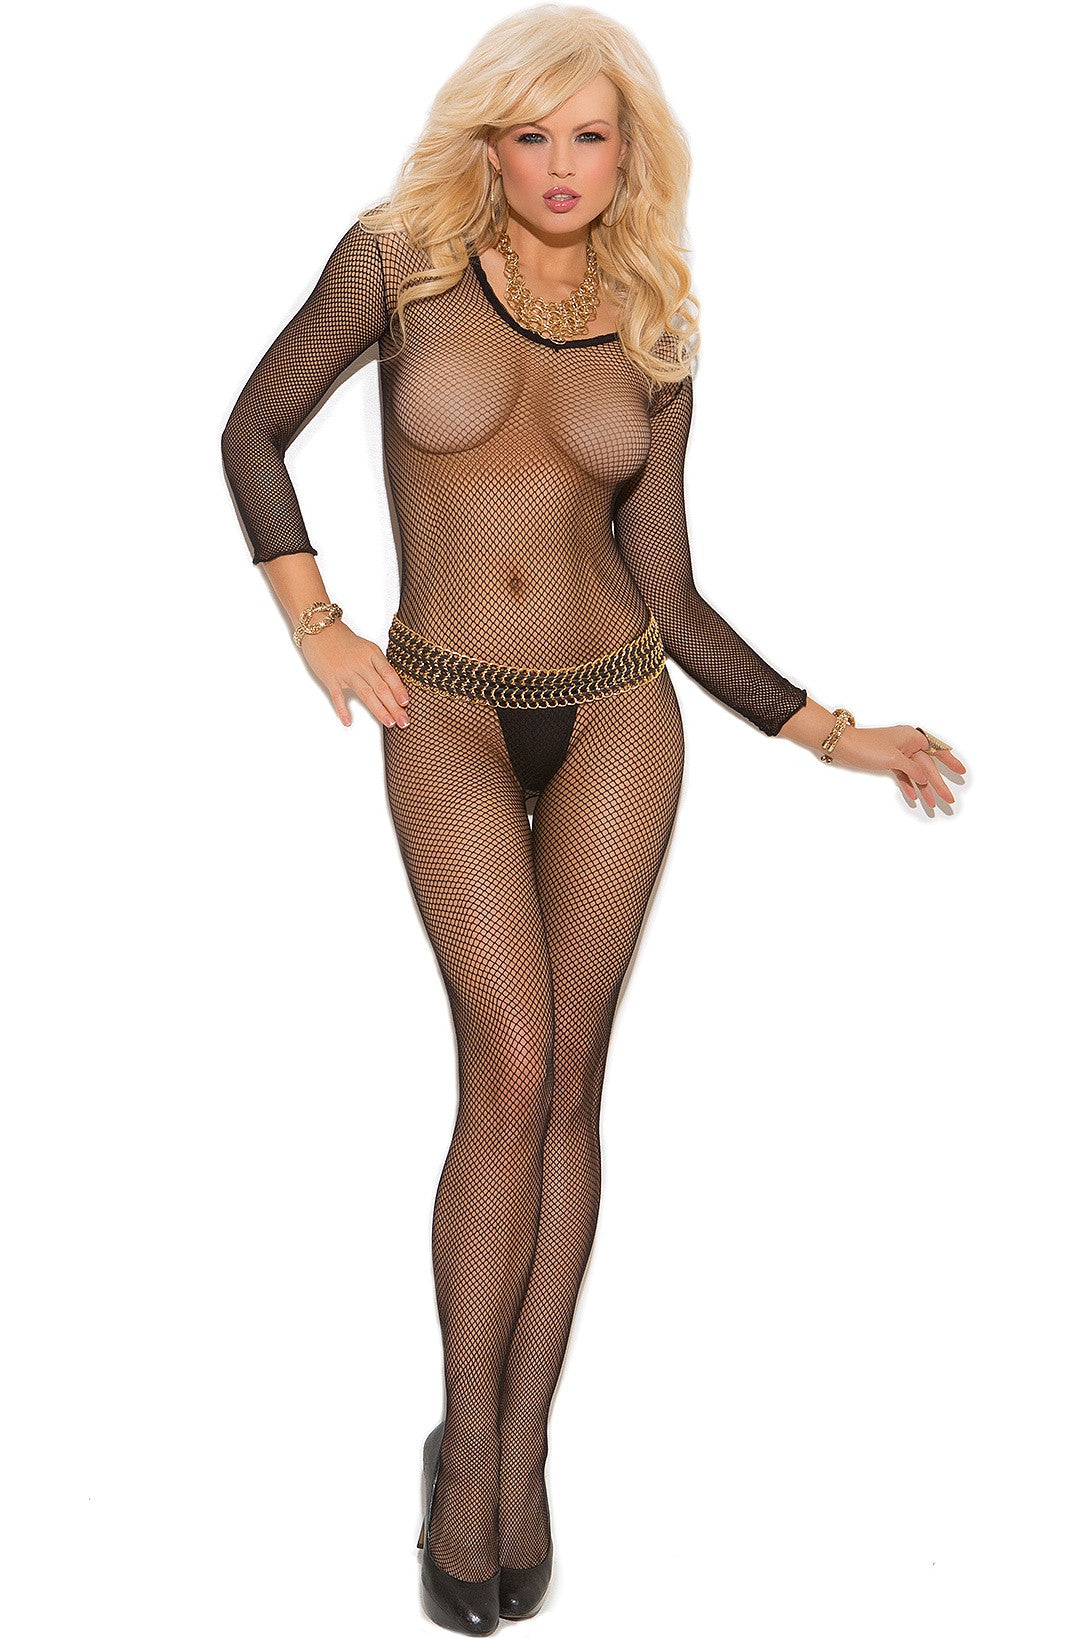 EM-1615 Black fishnet bodystocking - Sexylingerieland